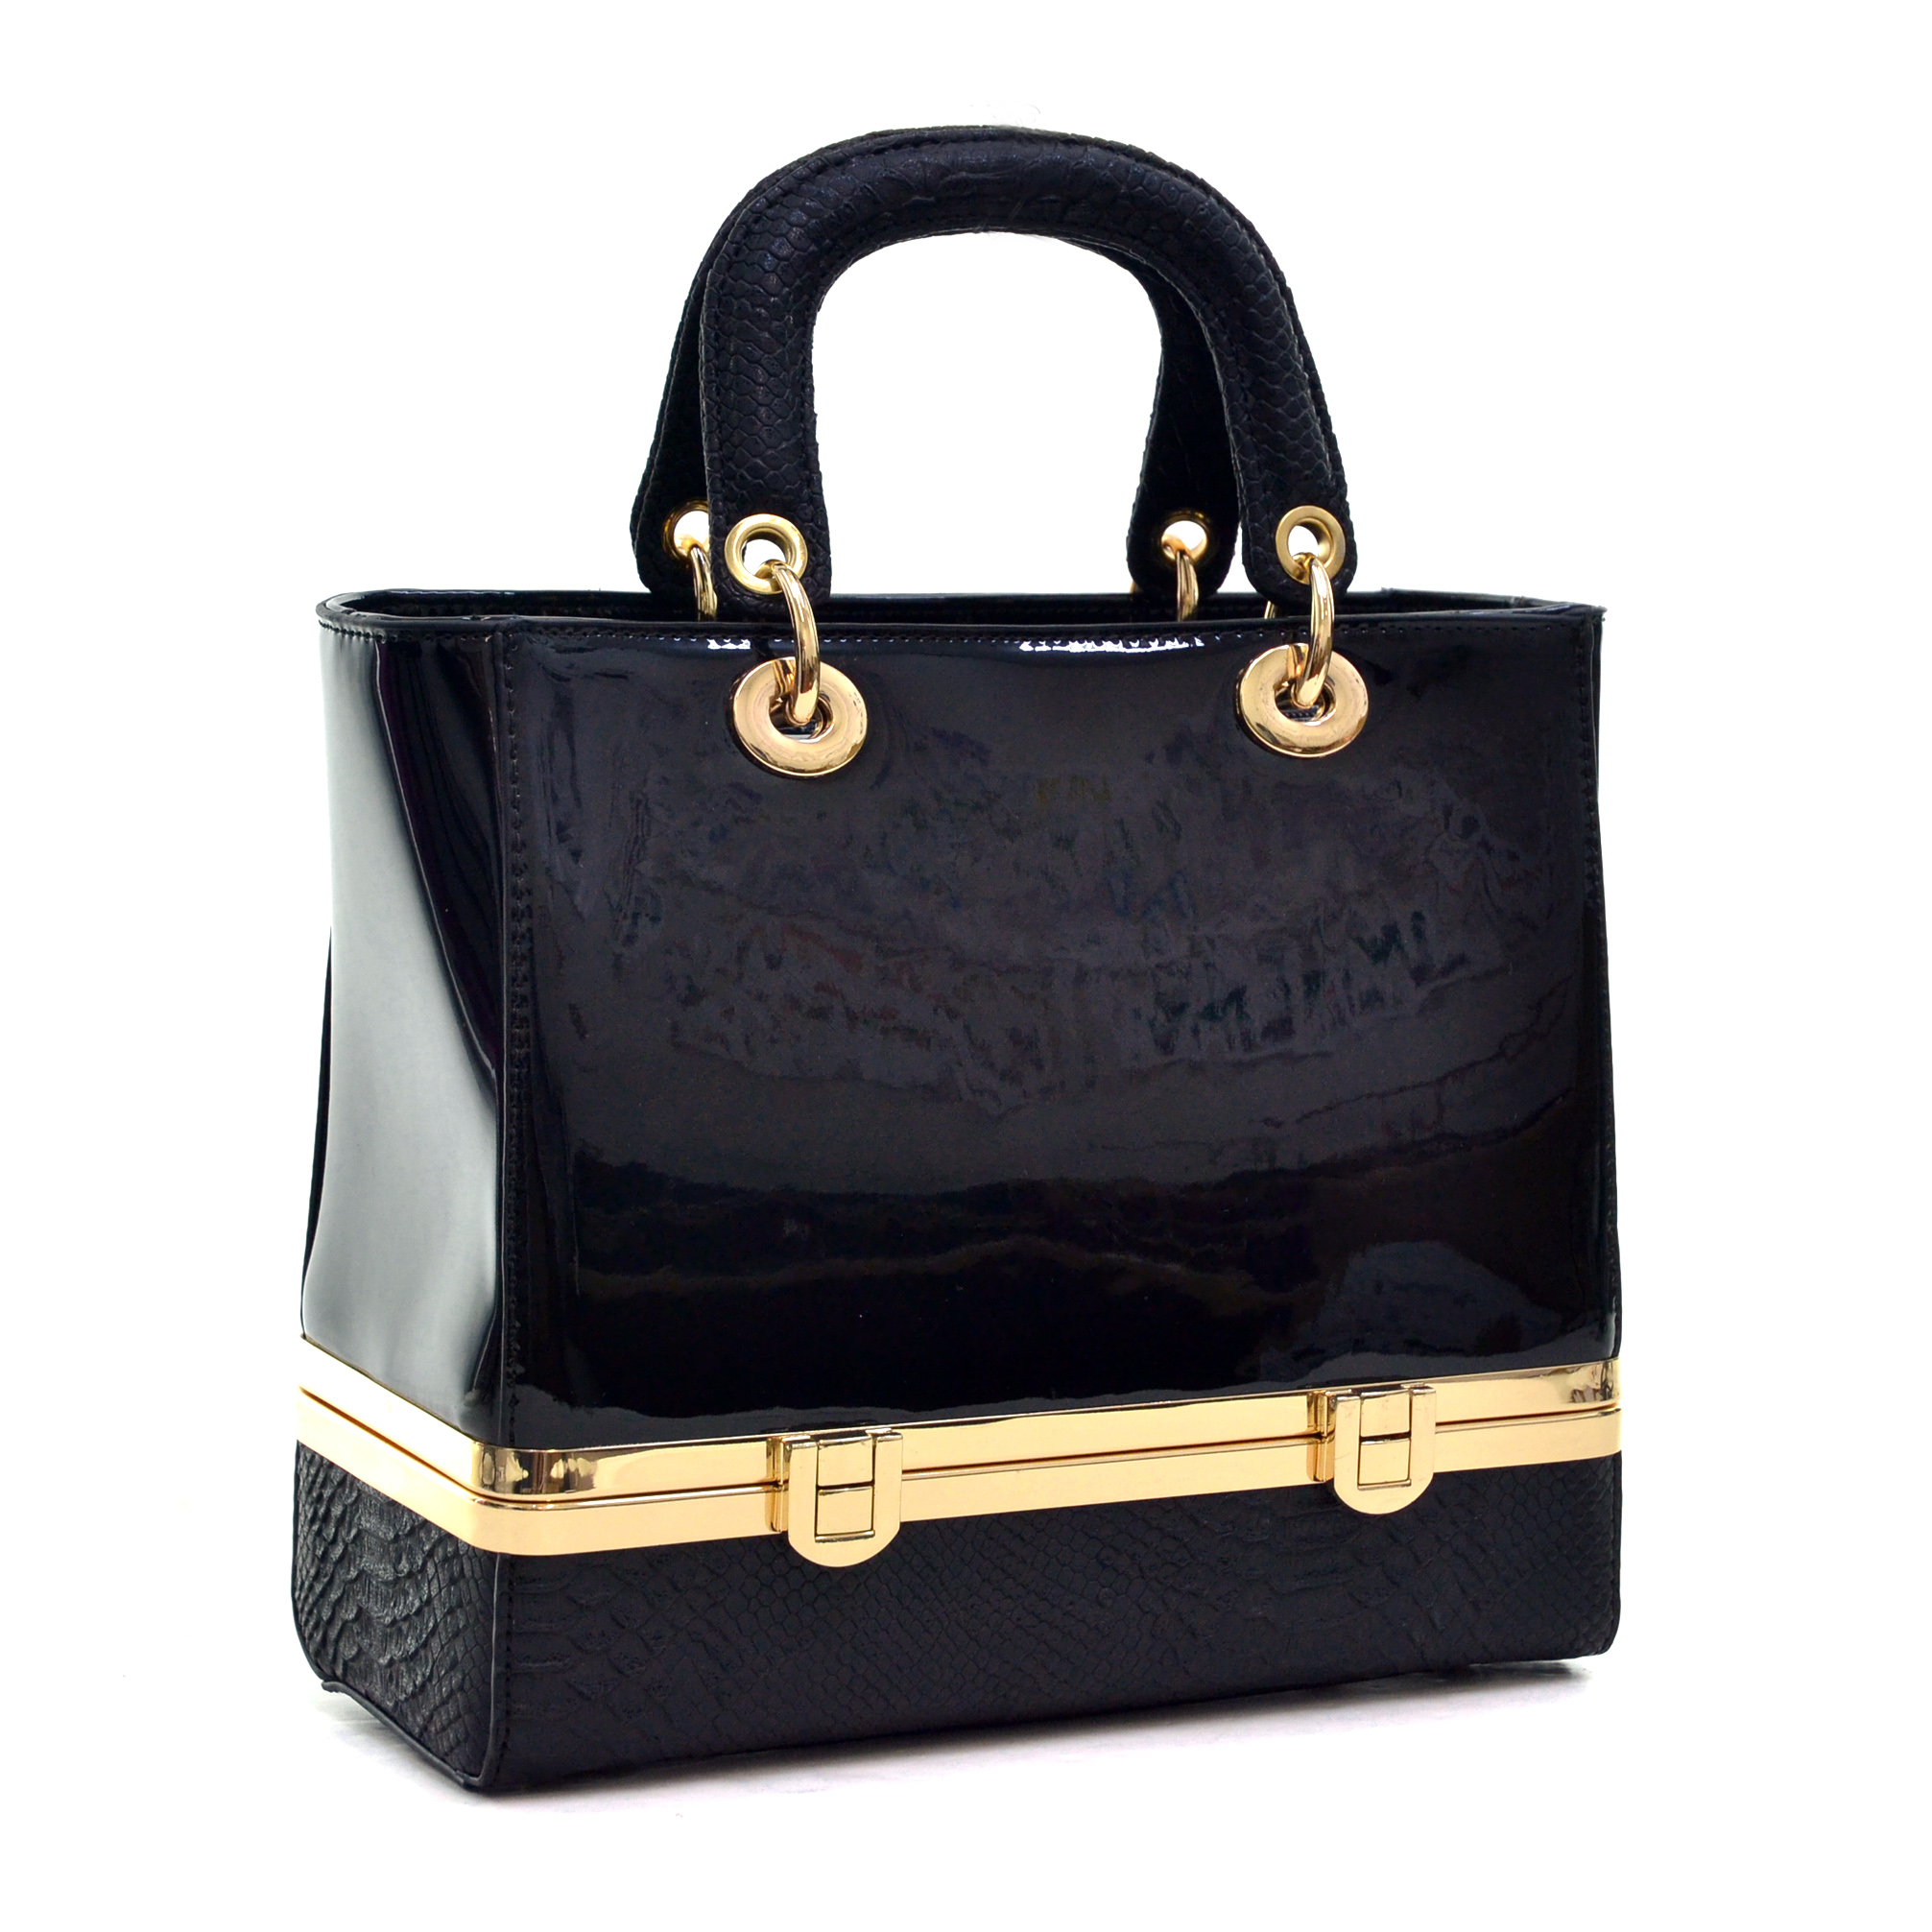 Dasein Patent Leather Satchel with Bottom Box Compartment